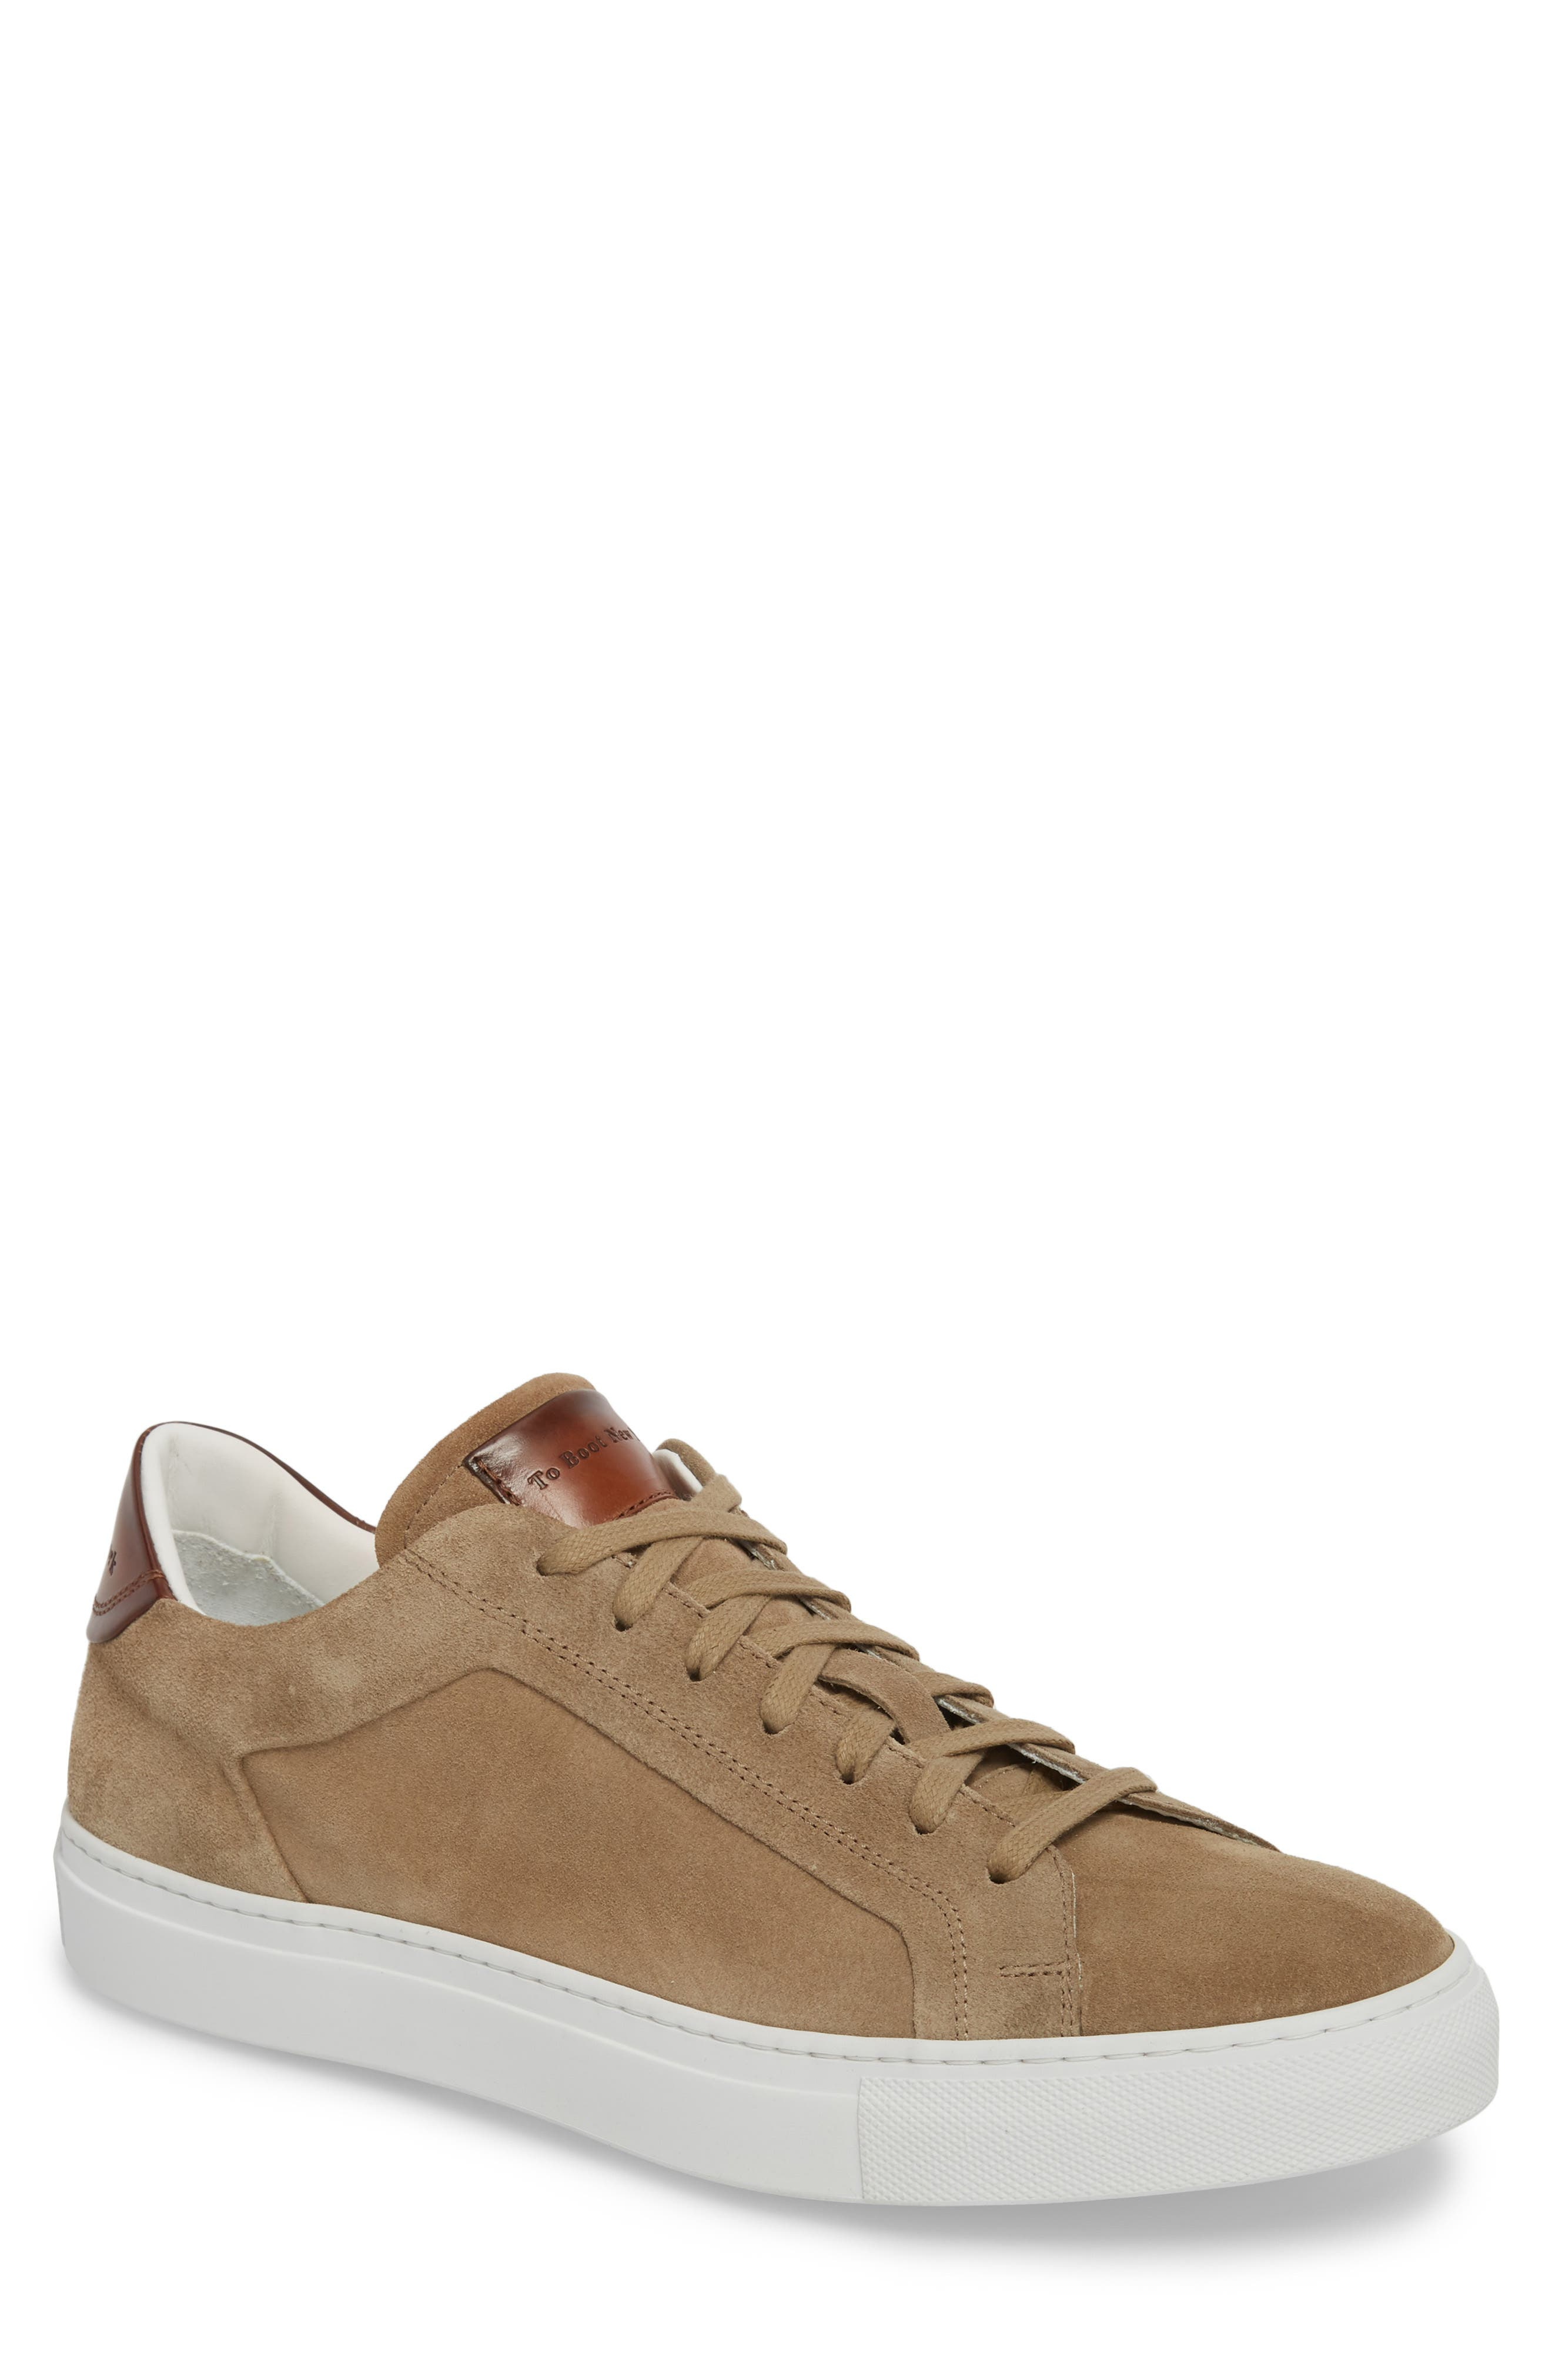 Britt Low Top Sneaker,                             Main thumbnail 1, color,                             Tan Suede